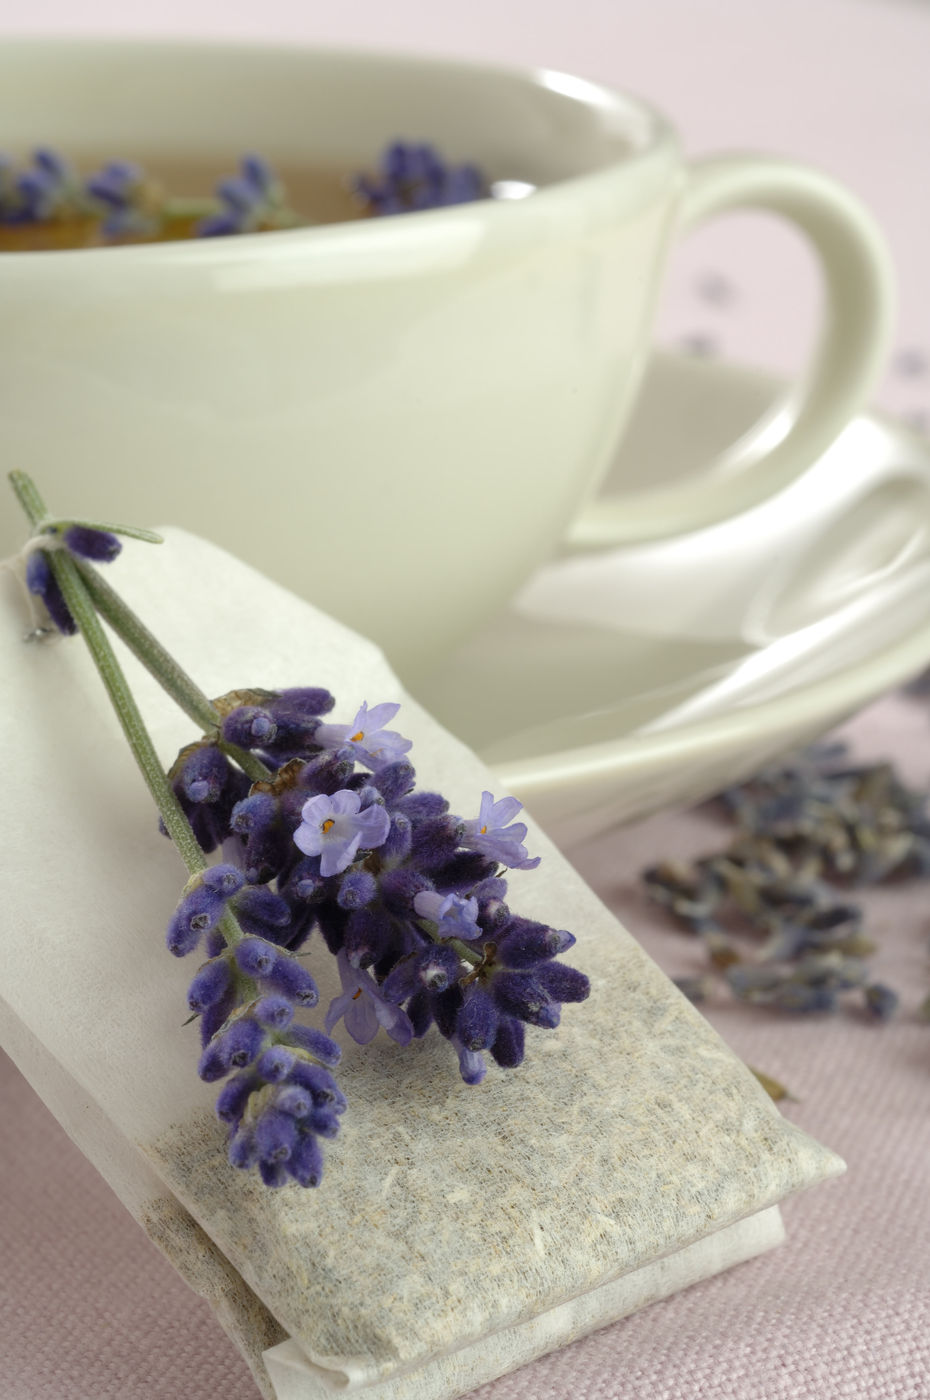 Lavender Tea in Teacup, Lavender Flower Tea Recipe